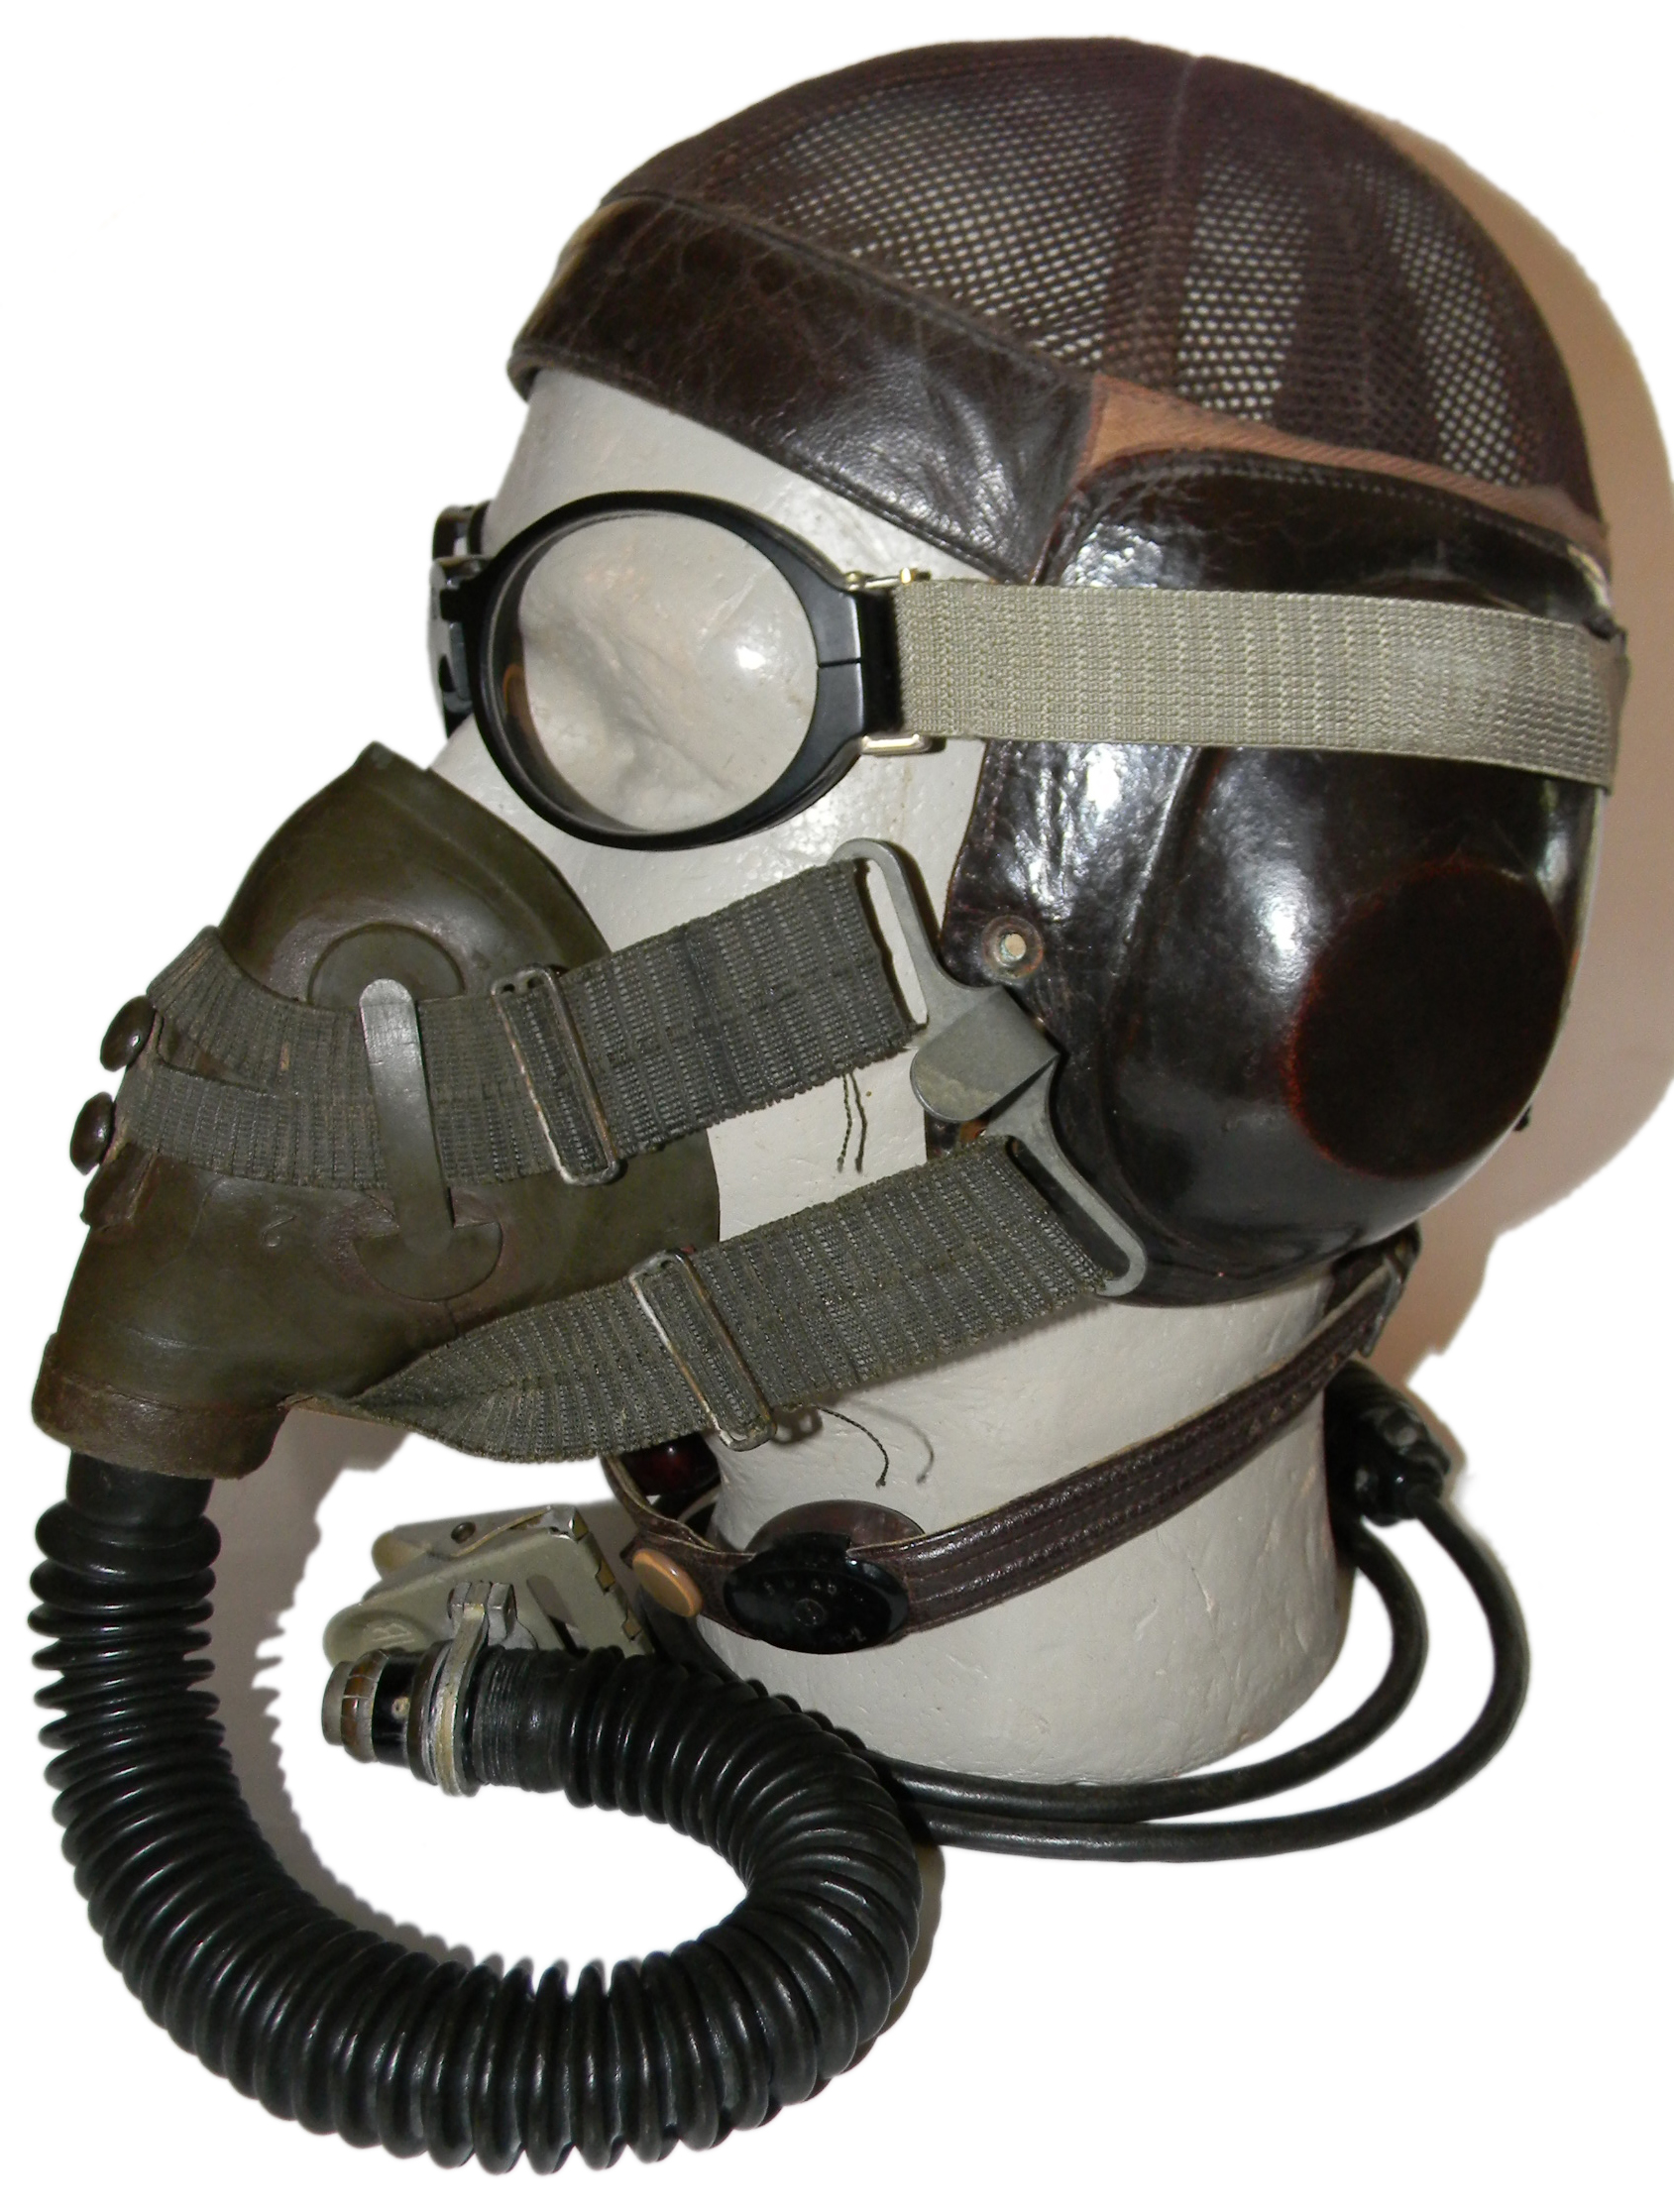 Luftwaffe fighter pilot headgear